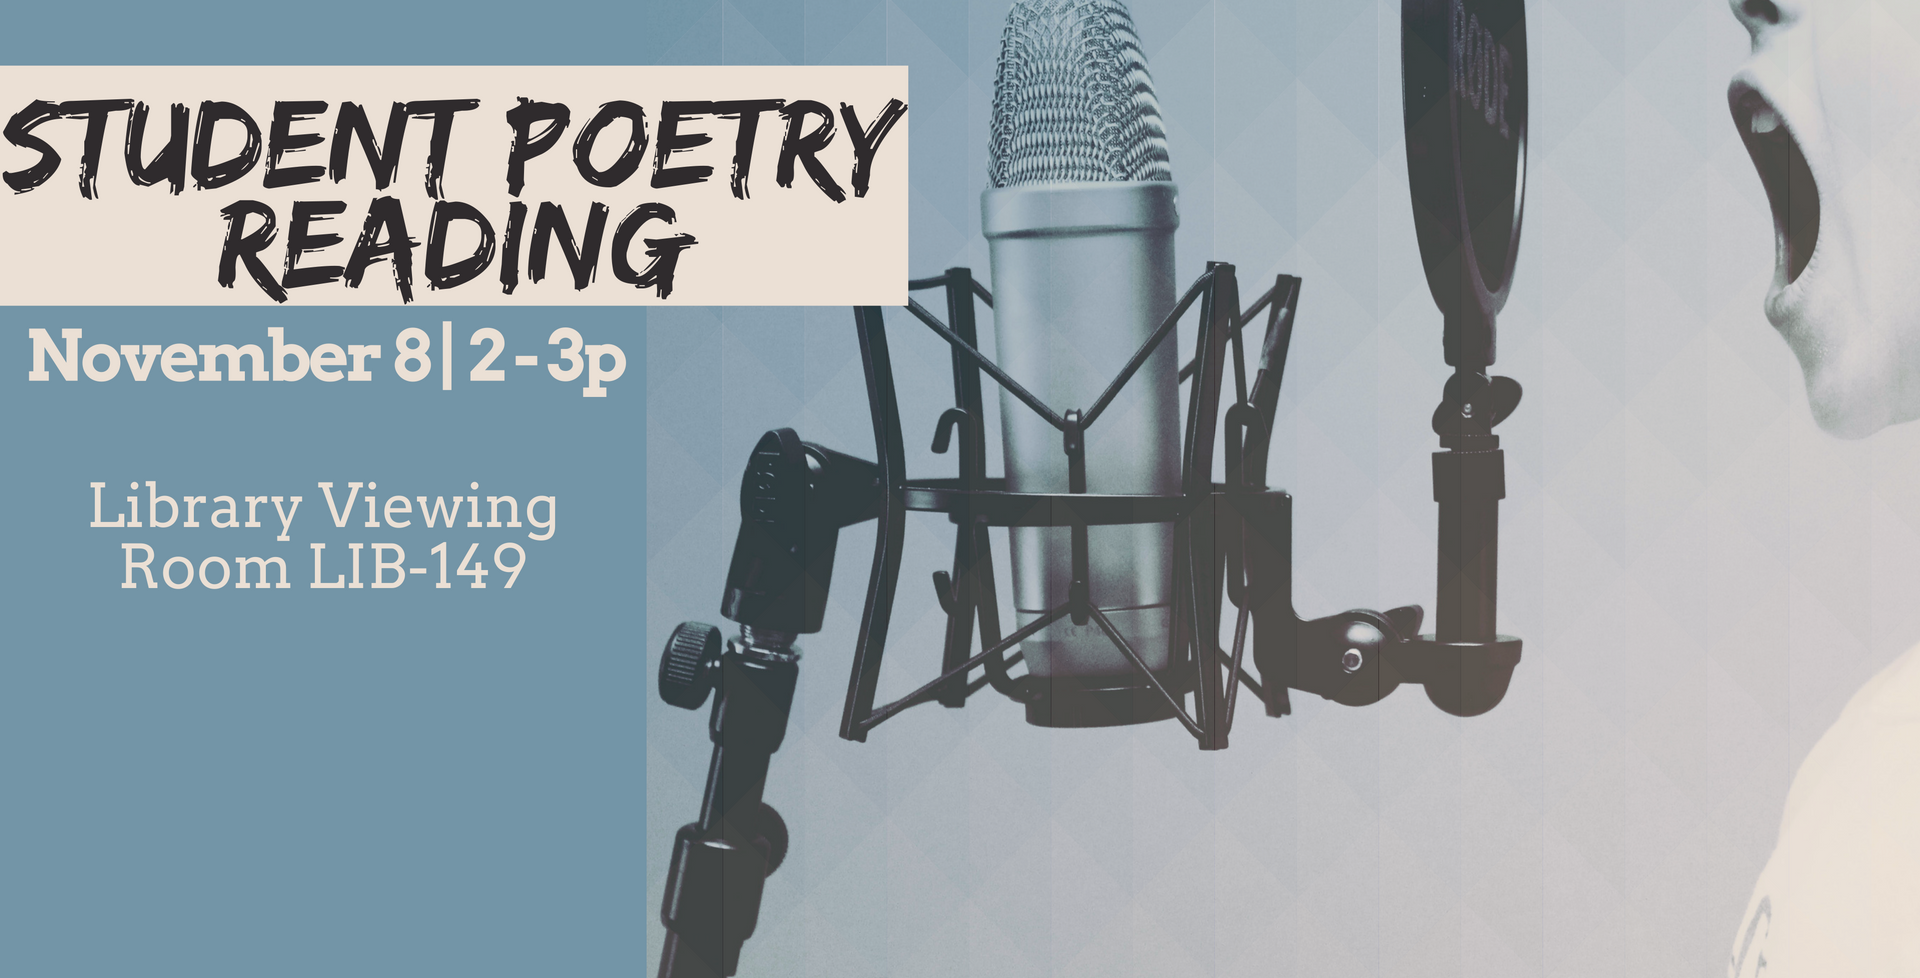 November 8 > Student Poetry Reading